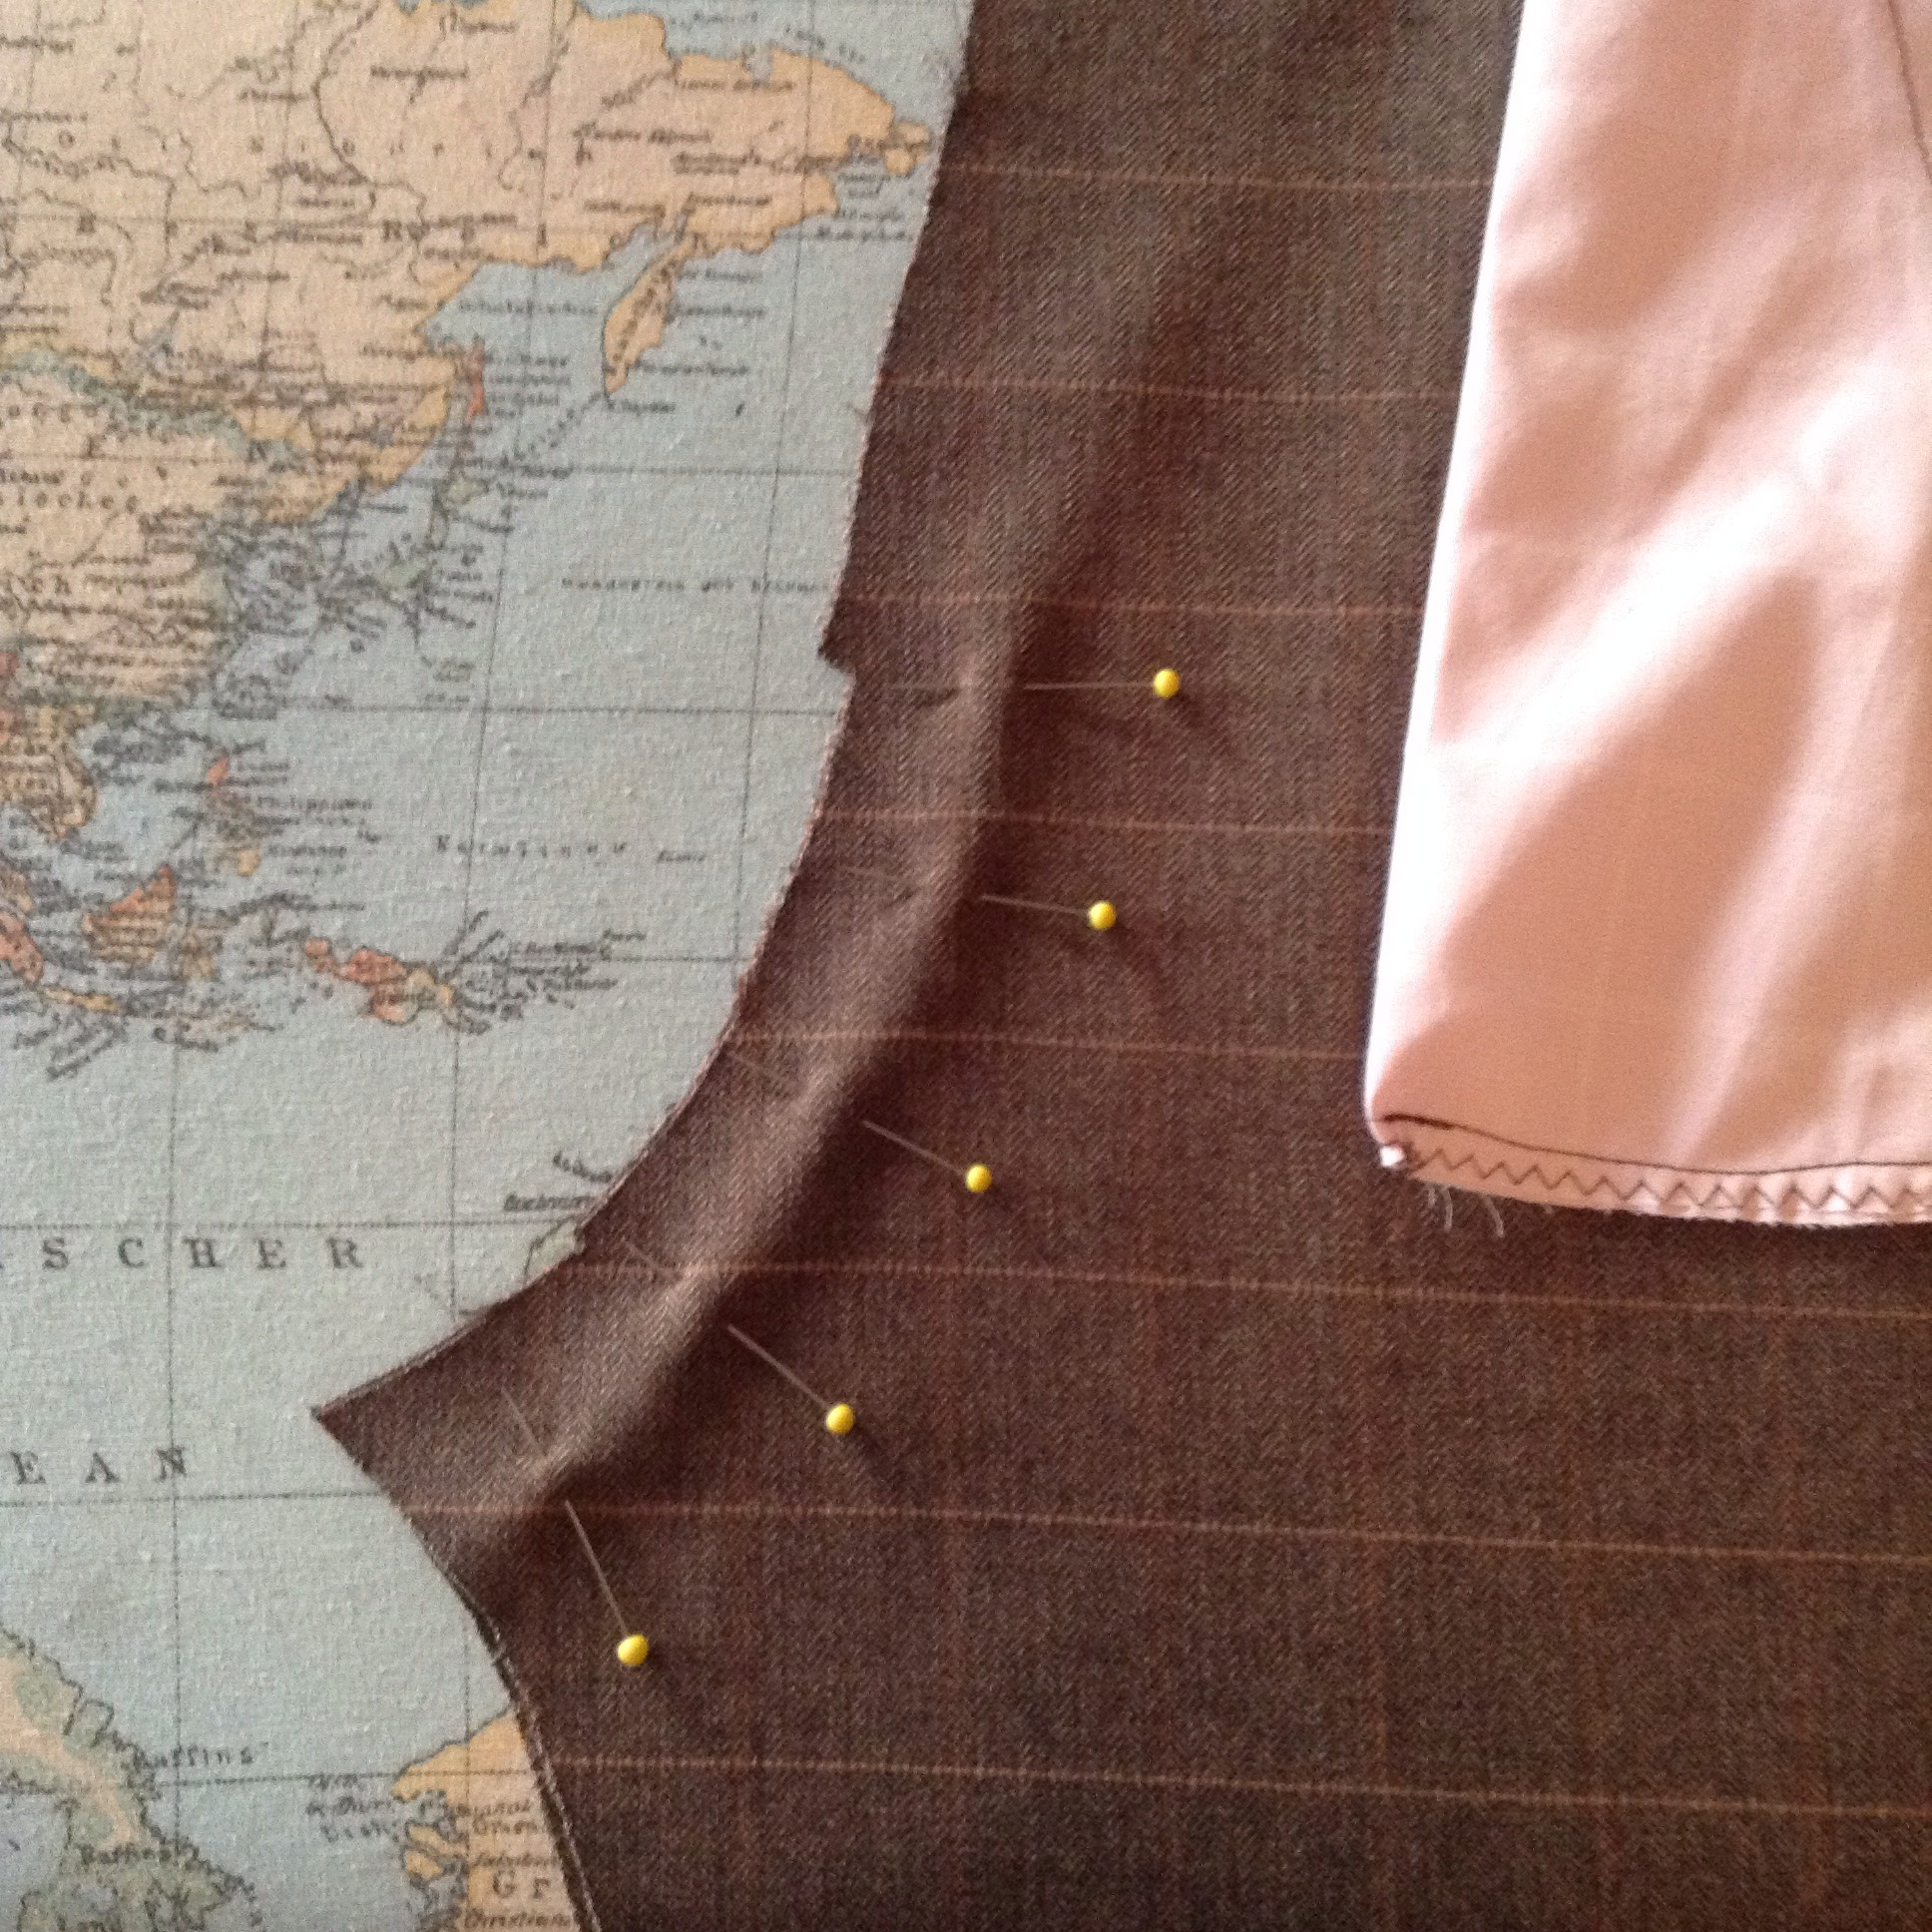 Picture of Pin & Sew the Crotch Seam